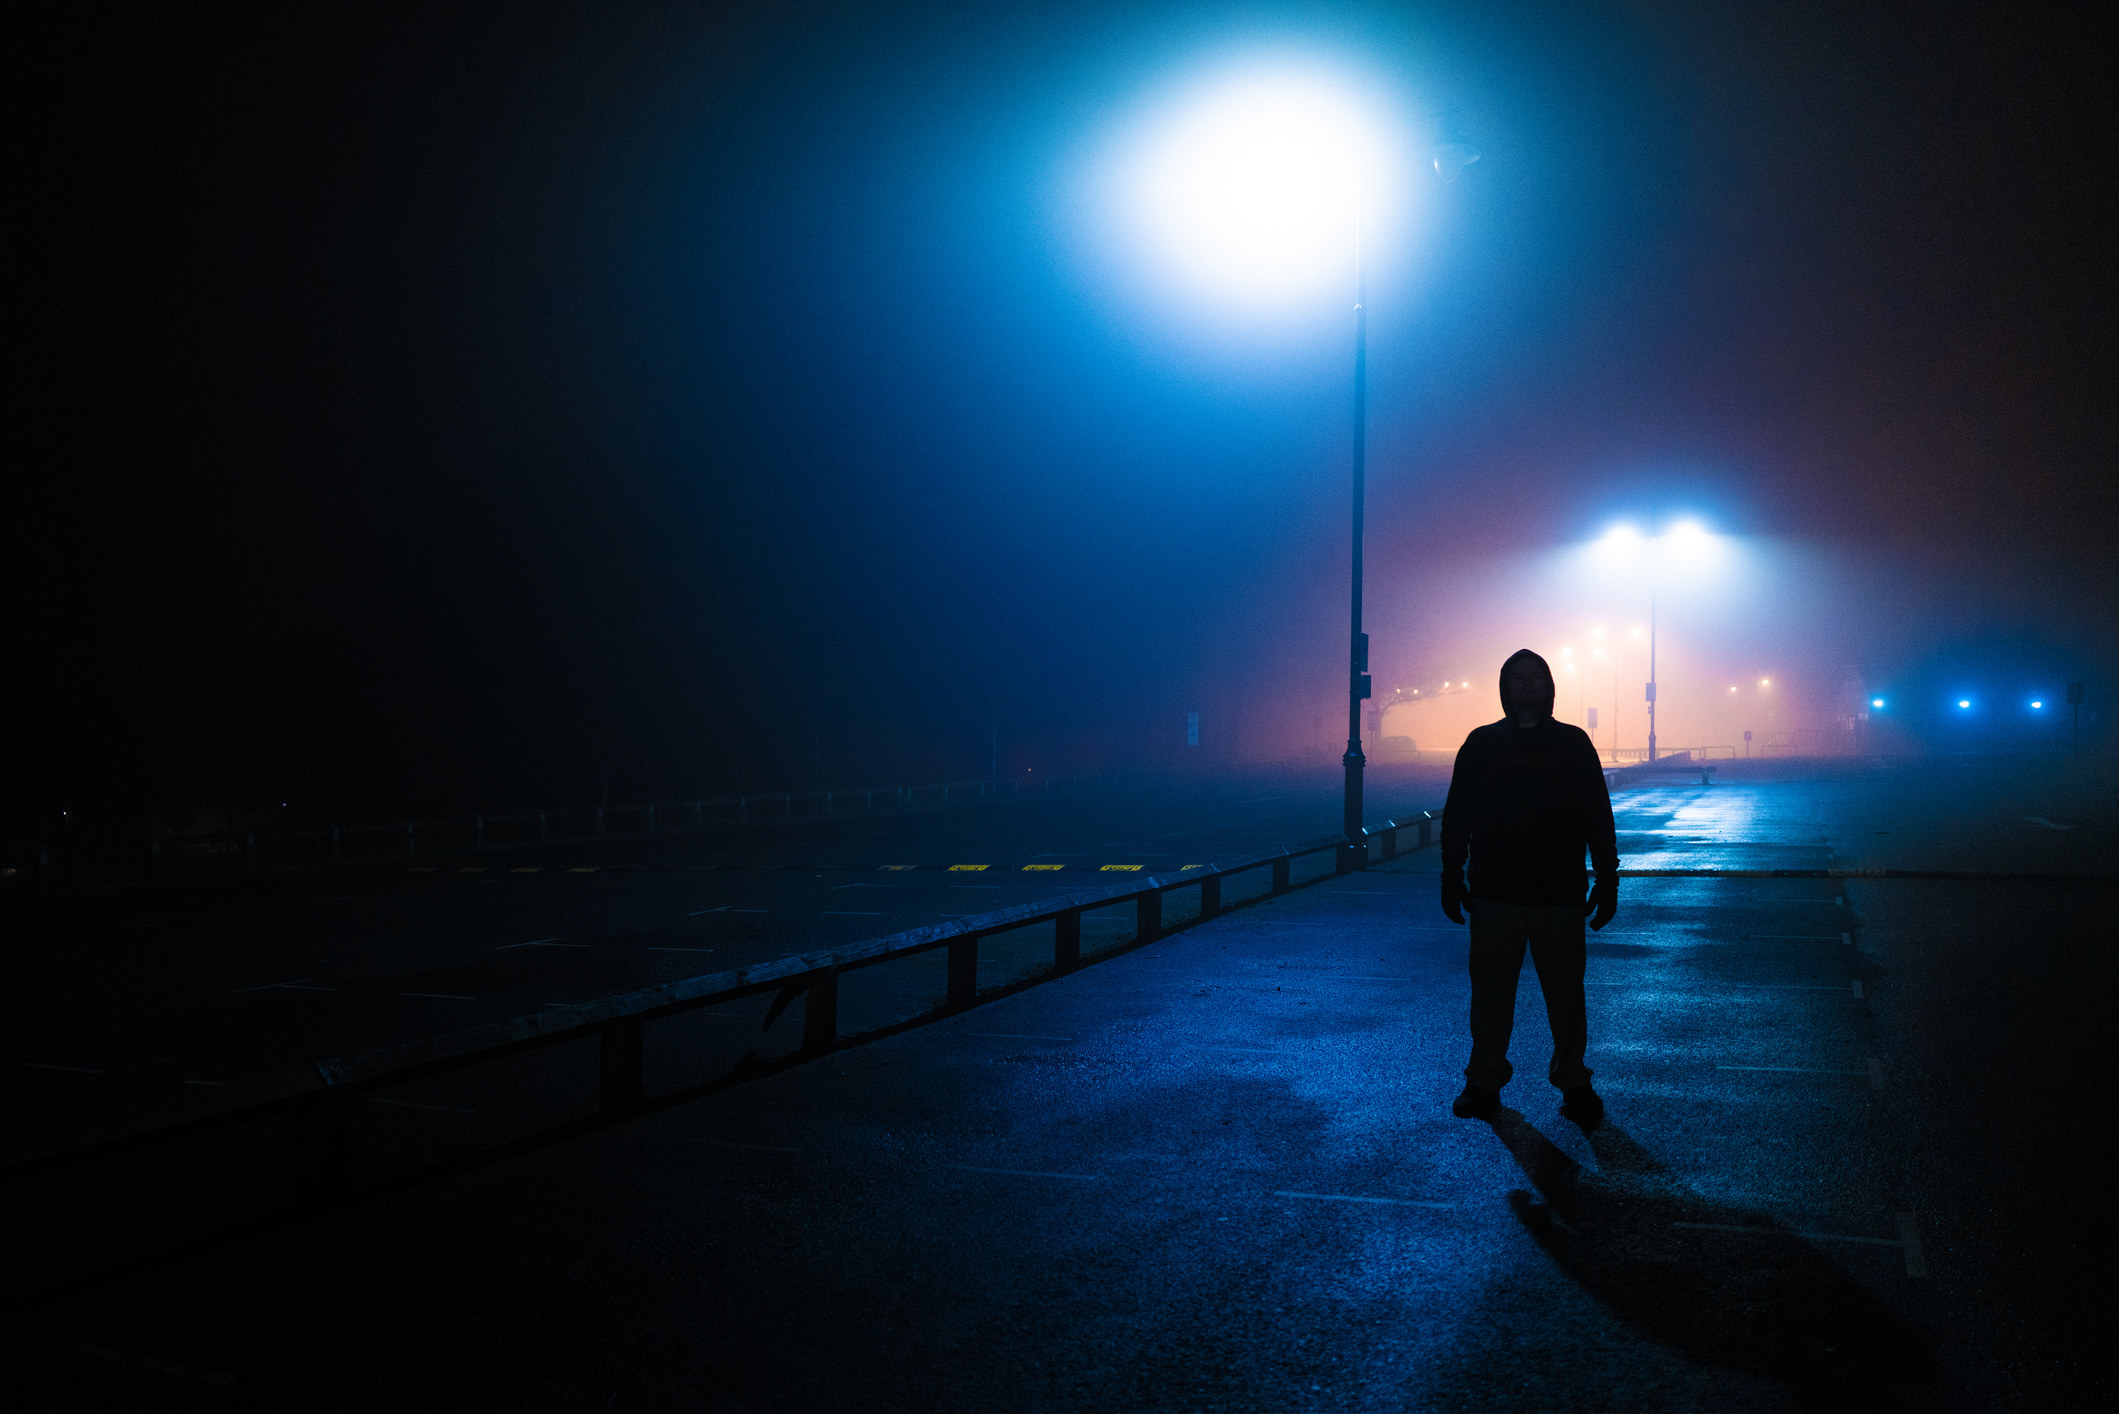 A person lurking on a dark road